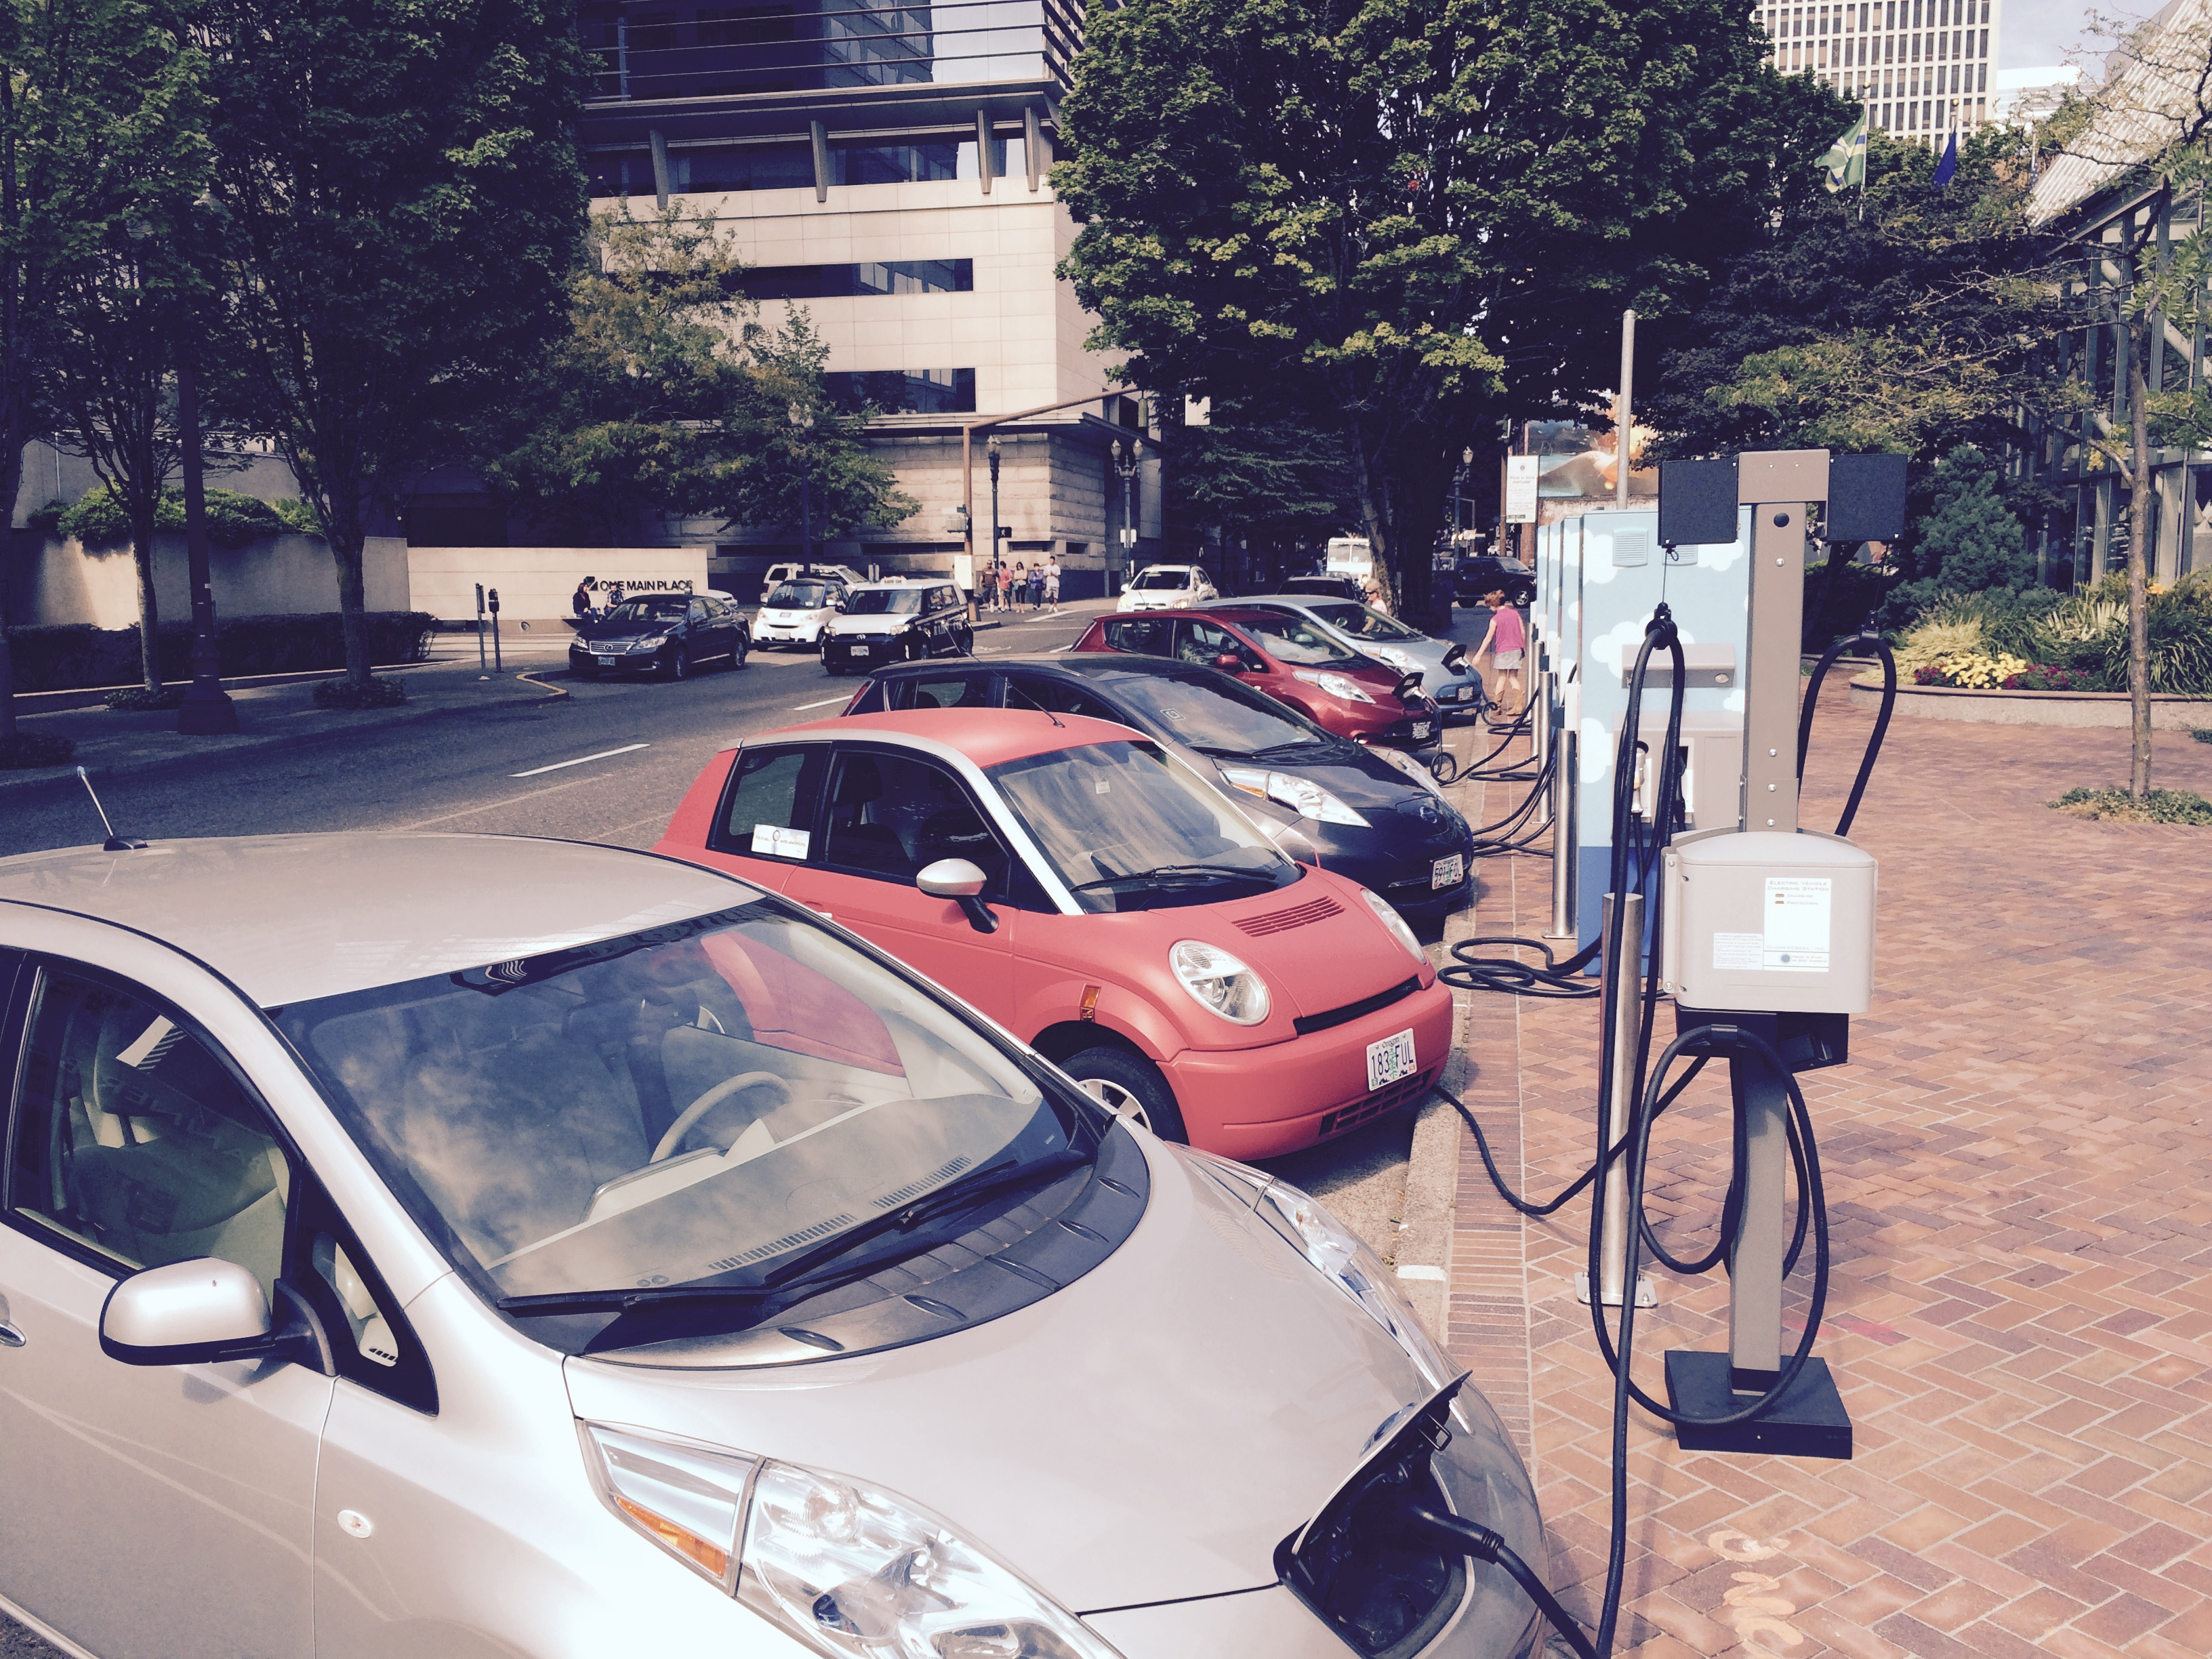 Top Six Trends In Plug-In Electric Cars Through 2020